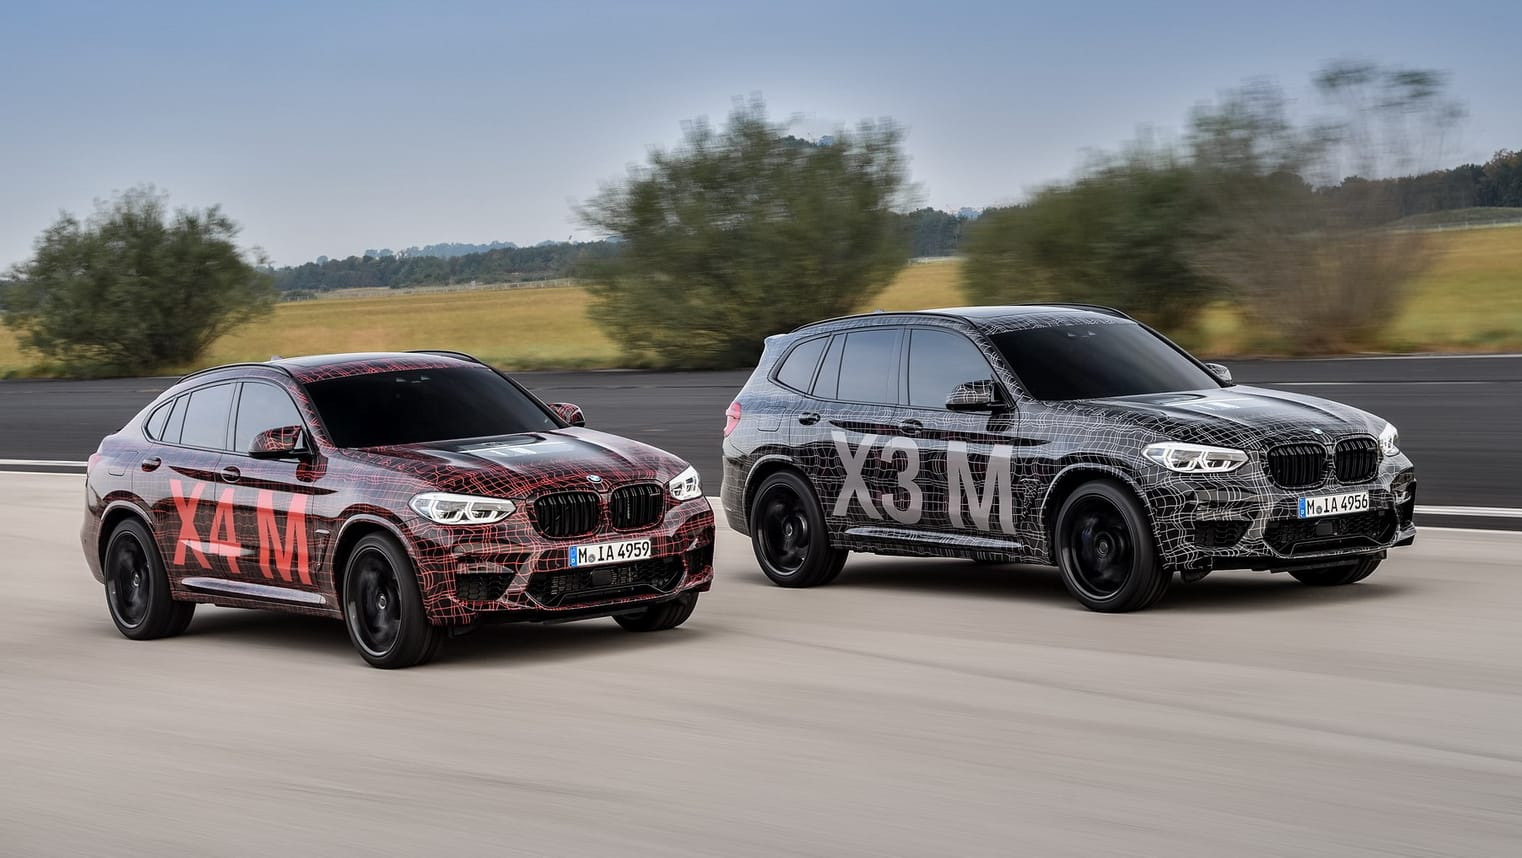 BMW X3 M and X4 M 2019 teased, confirmed for Australia